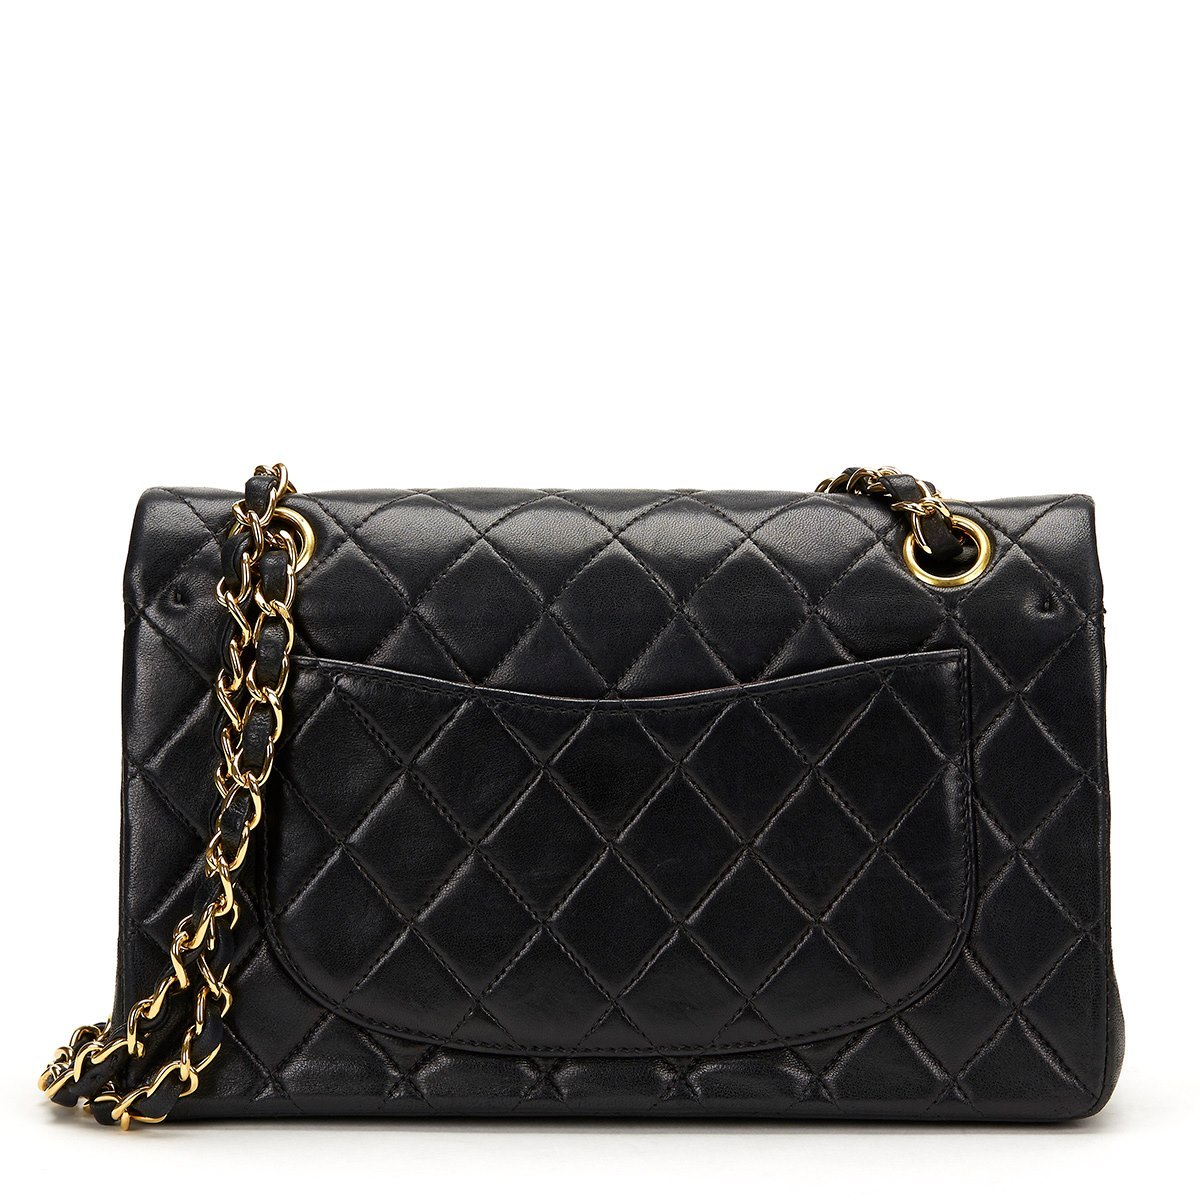 889f63907bb0 Chanel Black Quilted Lambskin Classic Small Double Flap Bag ...